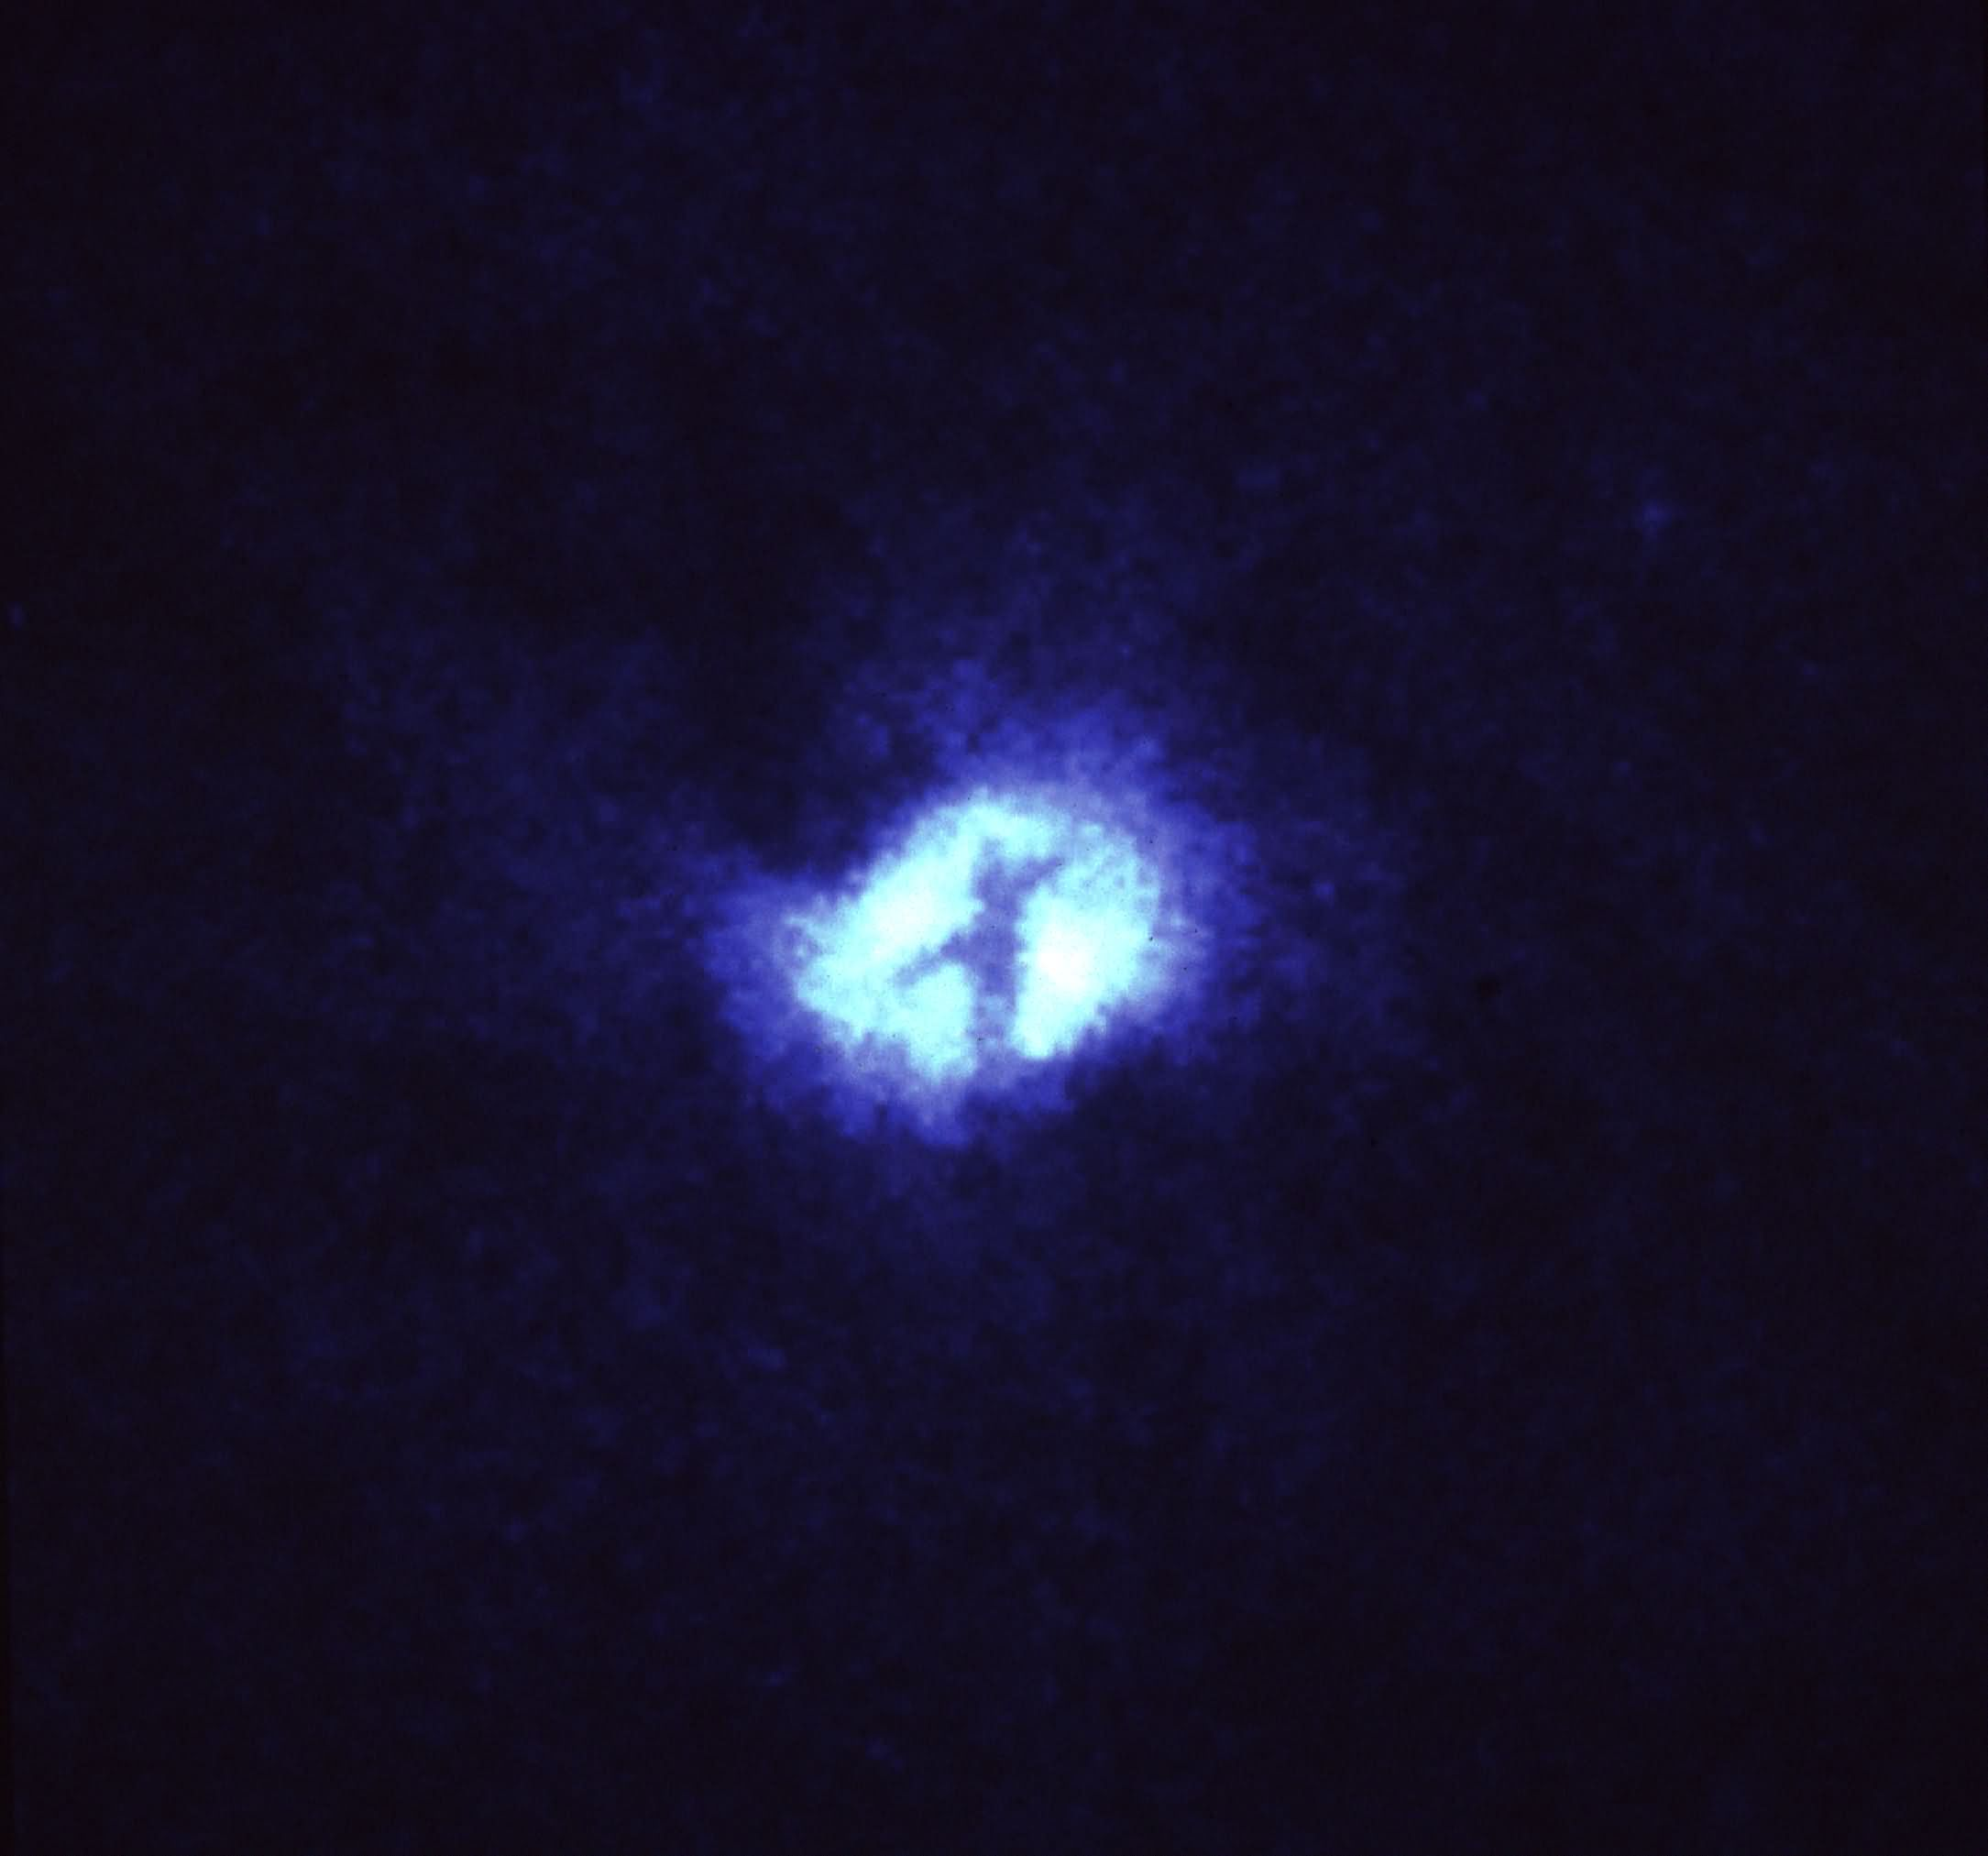 File:M51 whirlpool galaxy black hole.jpg - Wikipedia